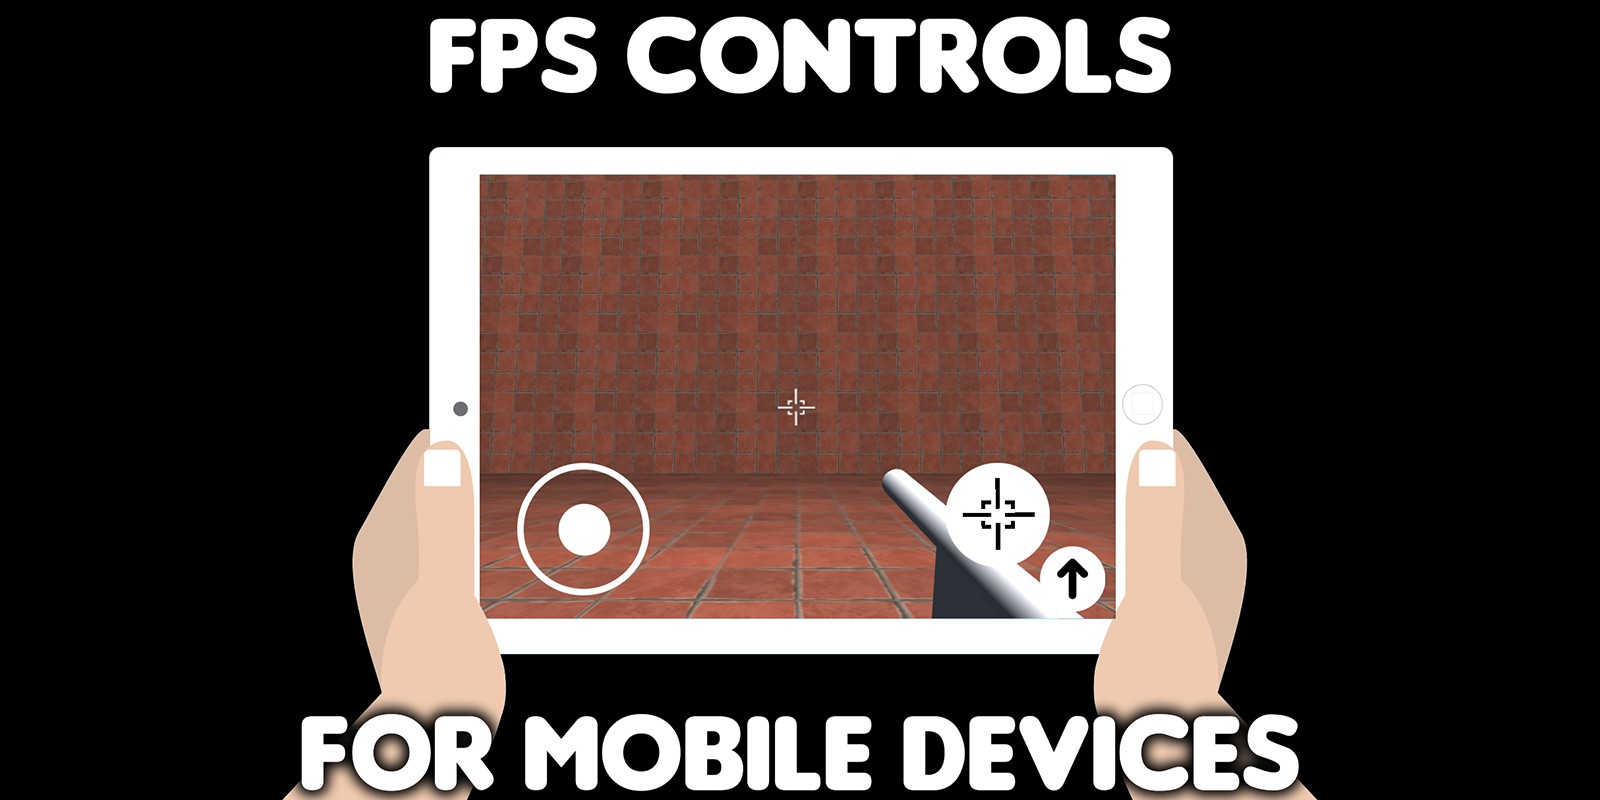 FPS Controls for mobile devices